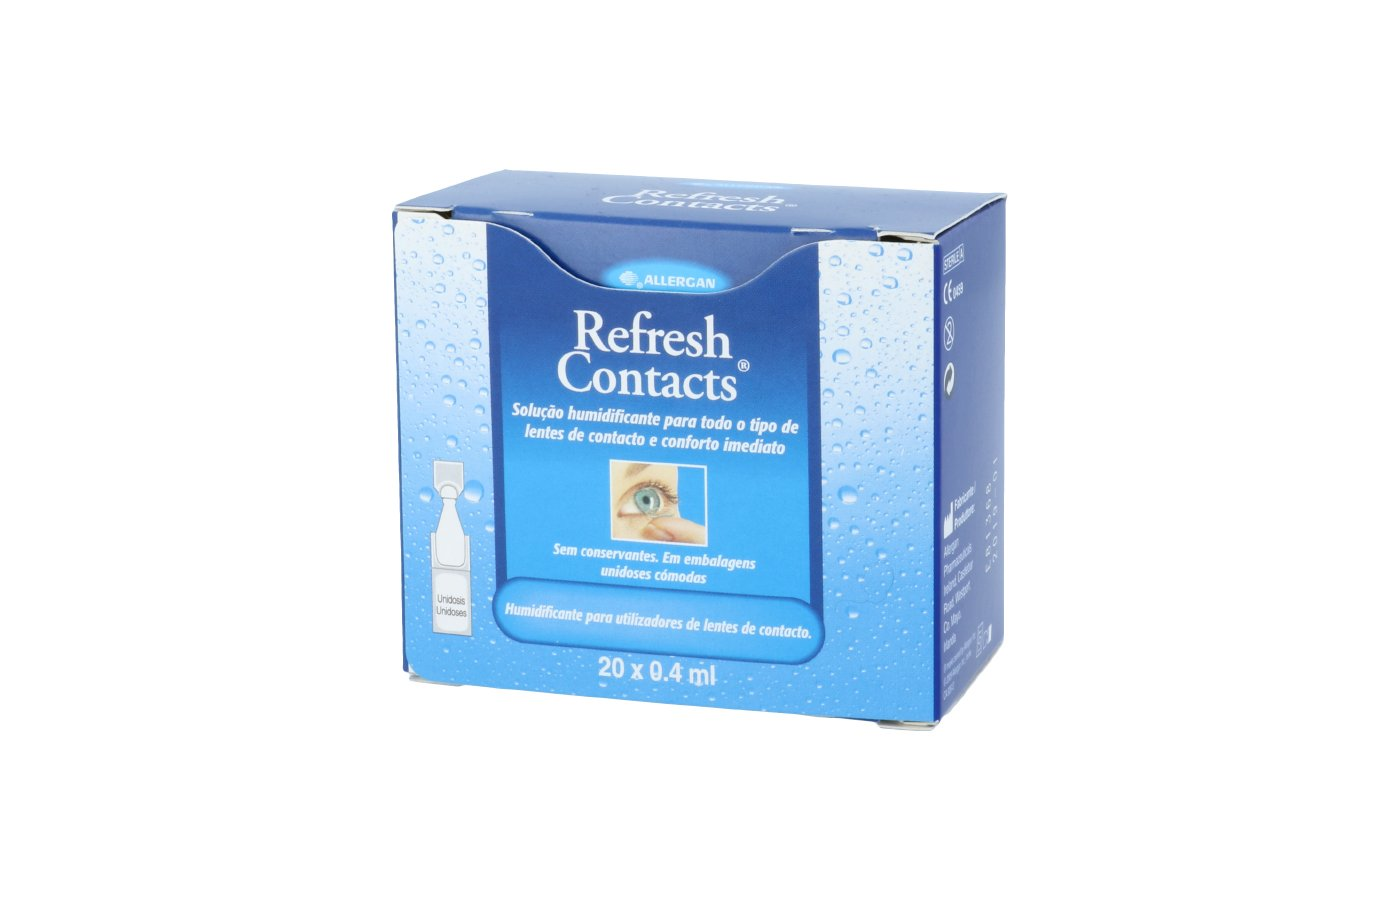 Refresh Contact 20x0,4 ml